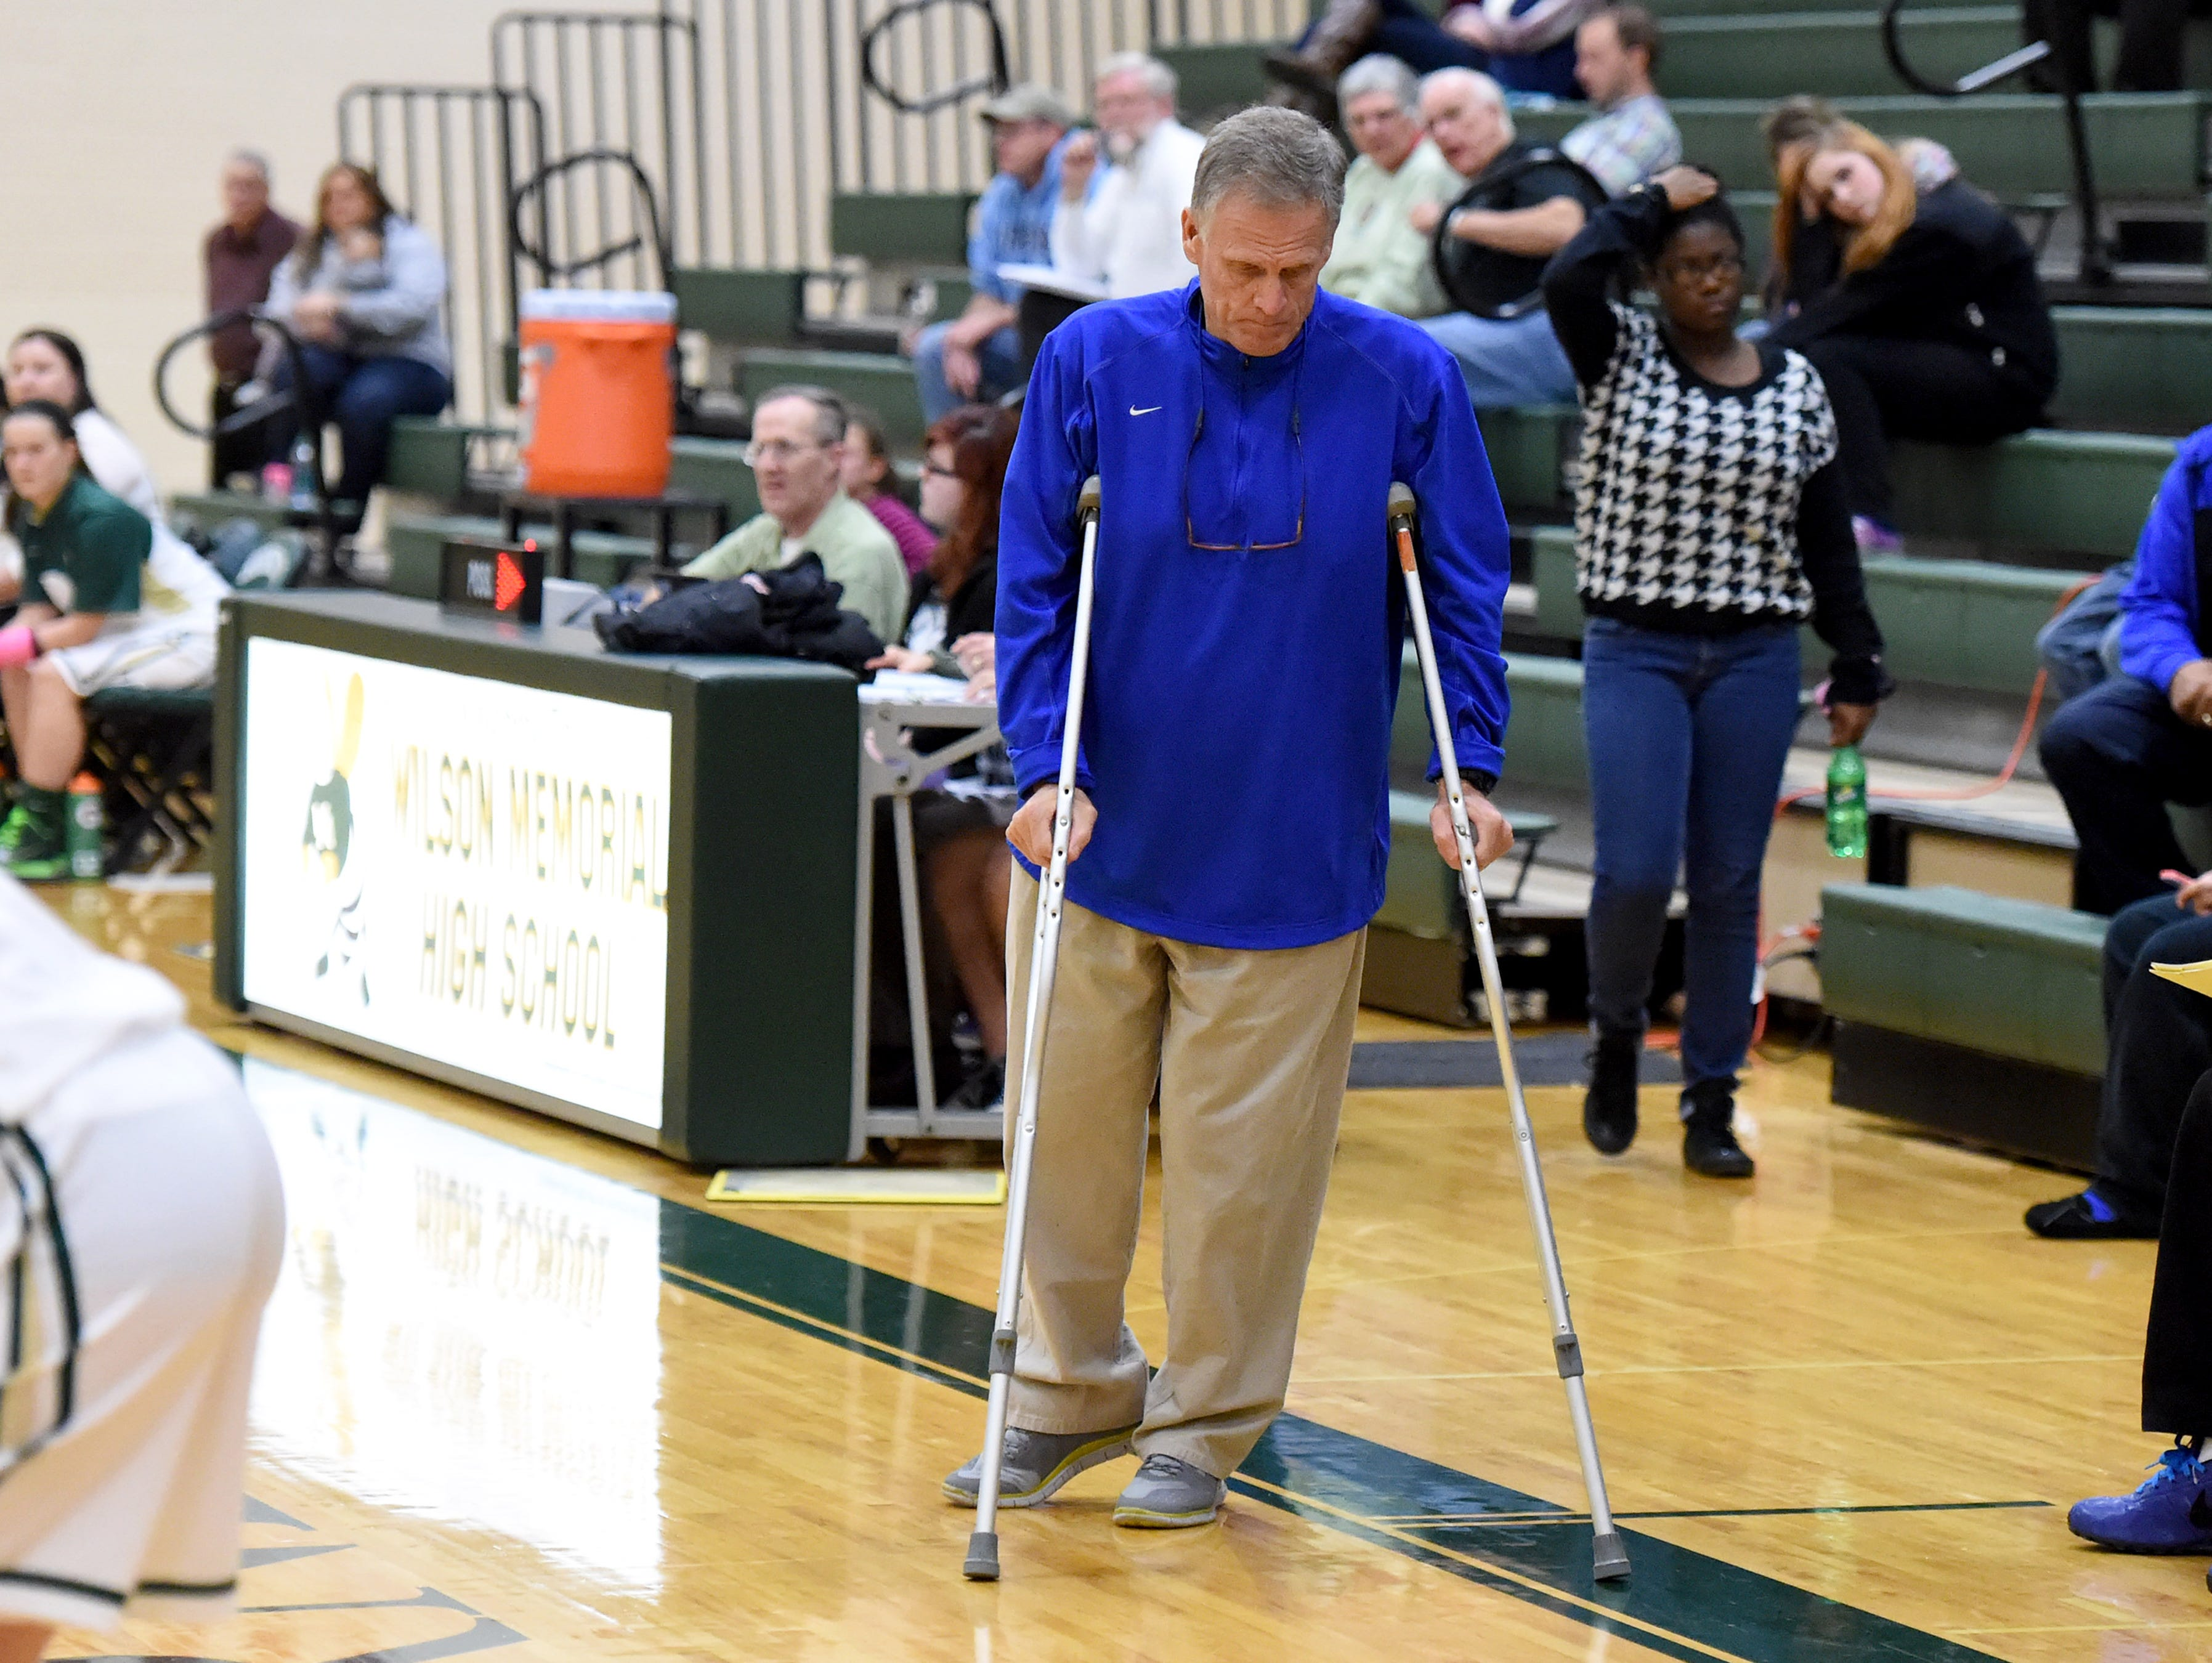 Robert E. Lee girls' basketball coach Dennis Dull uses crutches to get around as he coaches the team against Wilson Memorial on Dec. 15.